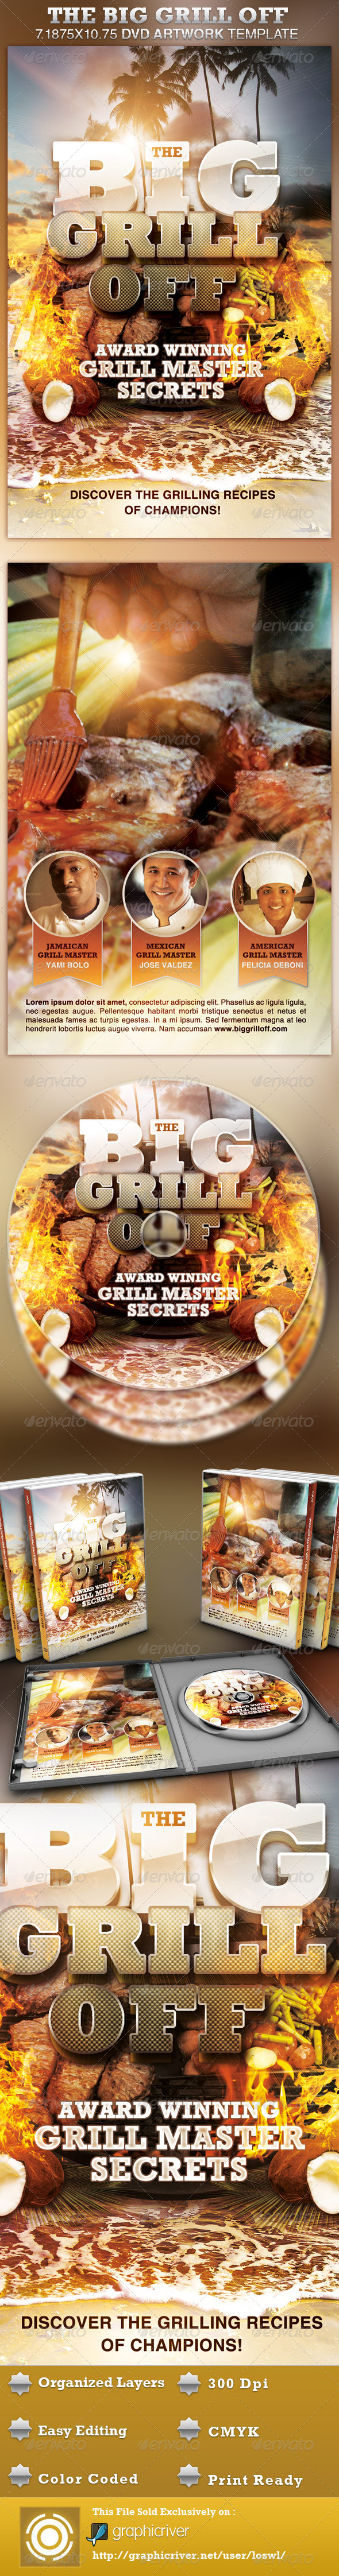 GraphicRiver The Big Grill Off DVD Artwork Template 4286581